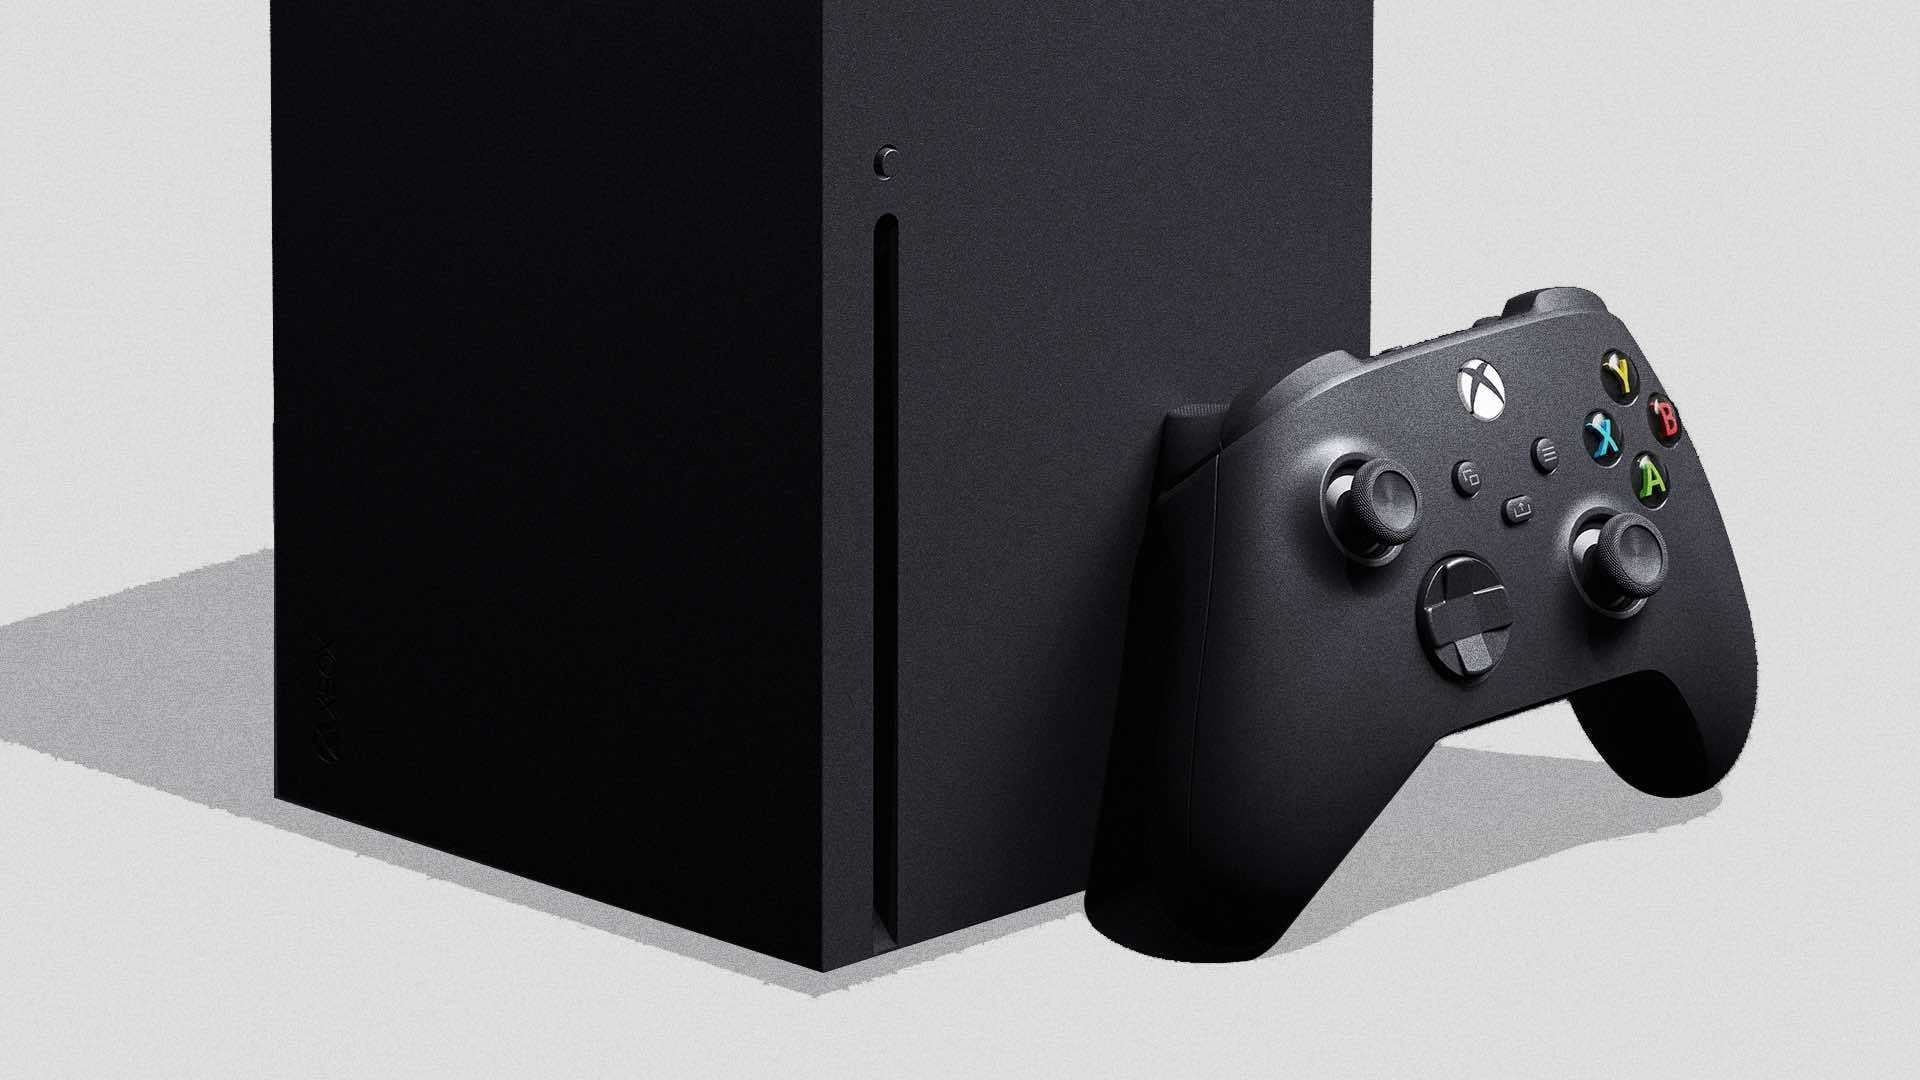 All You Need To Know About Xbox Series X Before Its Release Droidjournal